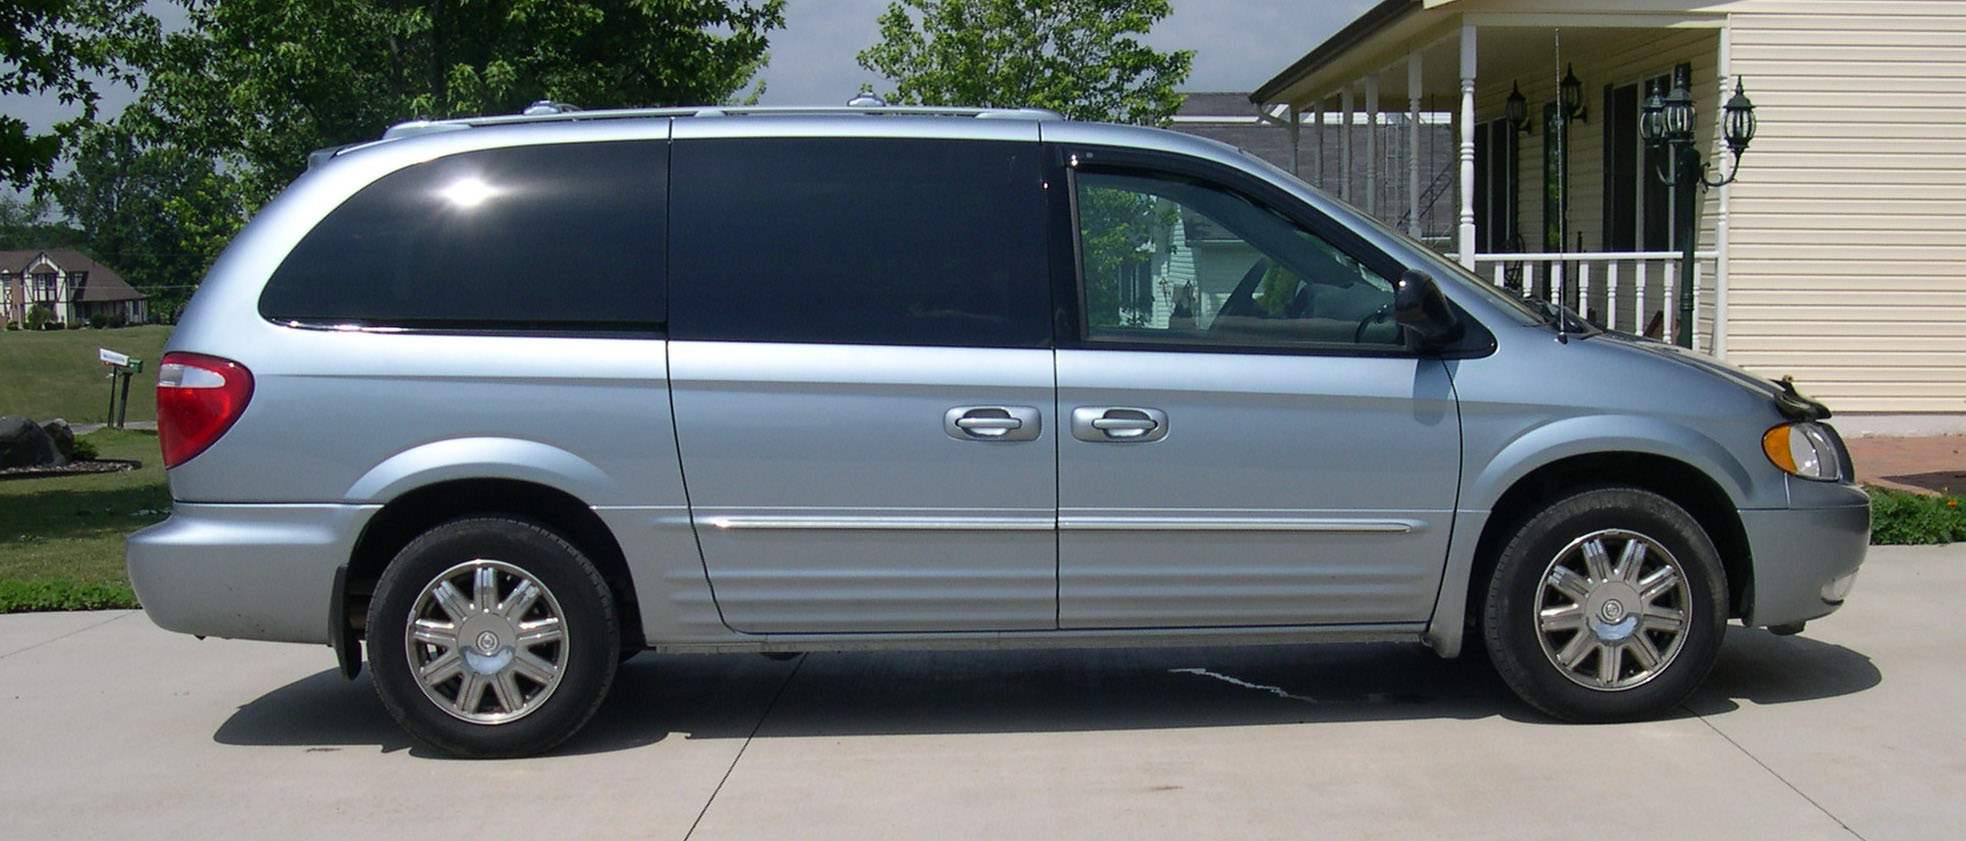 2004 Chrysler Town And Country #2